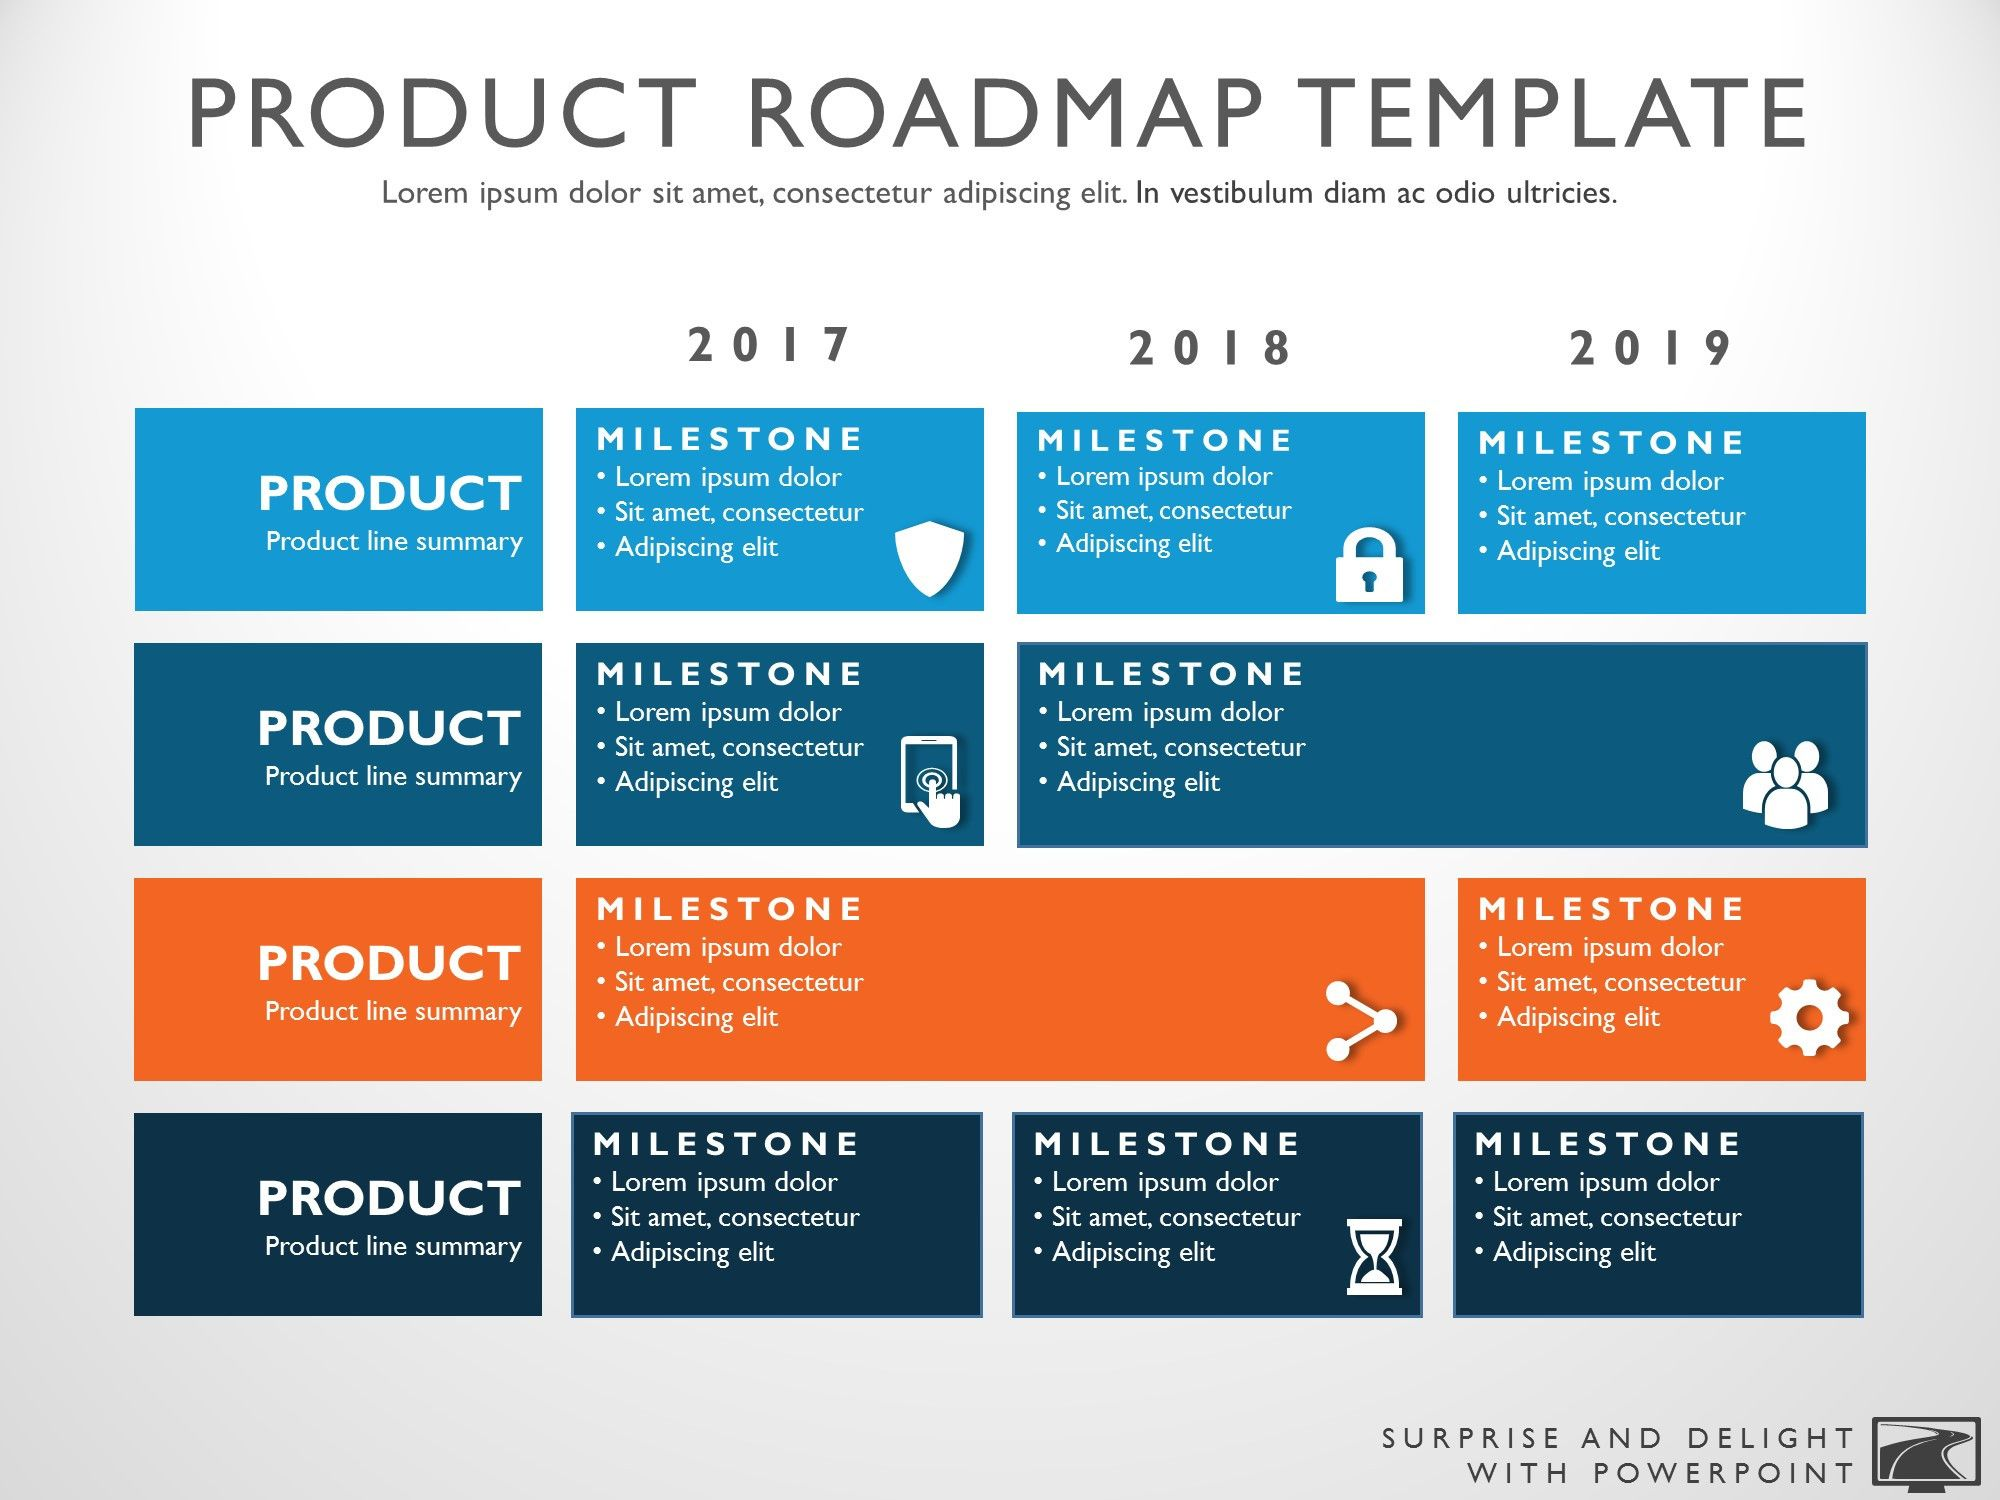 three phase business planning timeline roadmapping powerpoint template my product roadmap. Black Bedroom Furniture Sets. Home Design Ideas